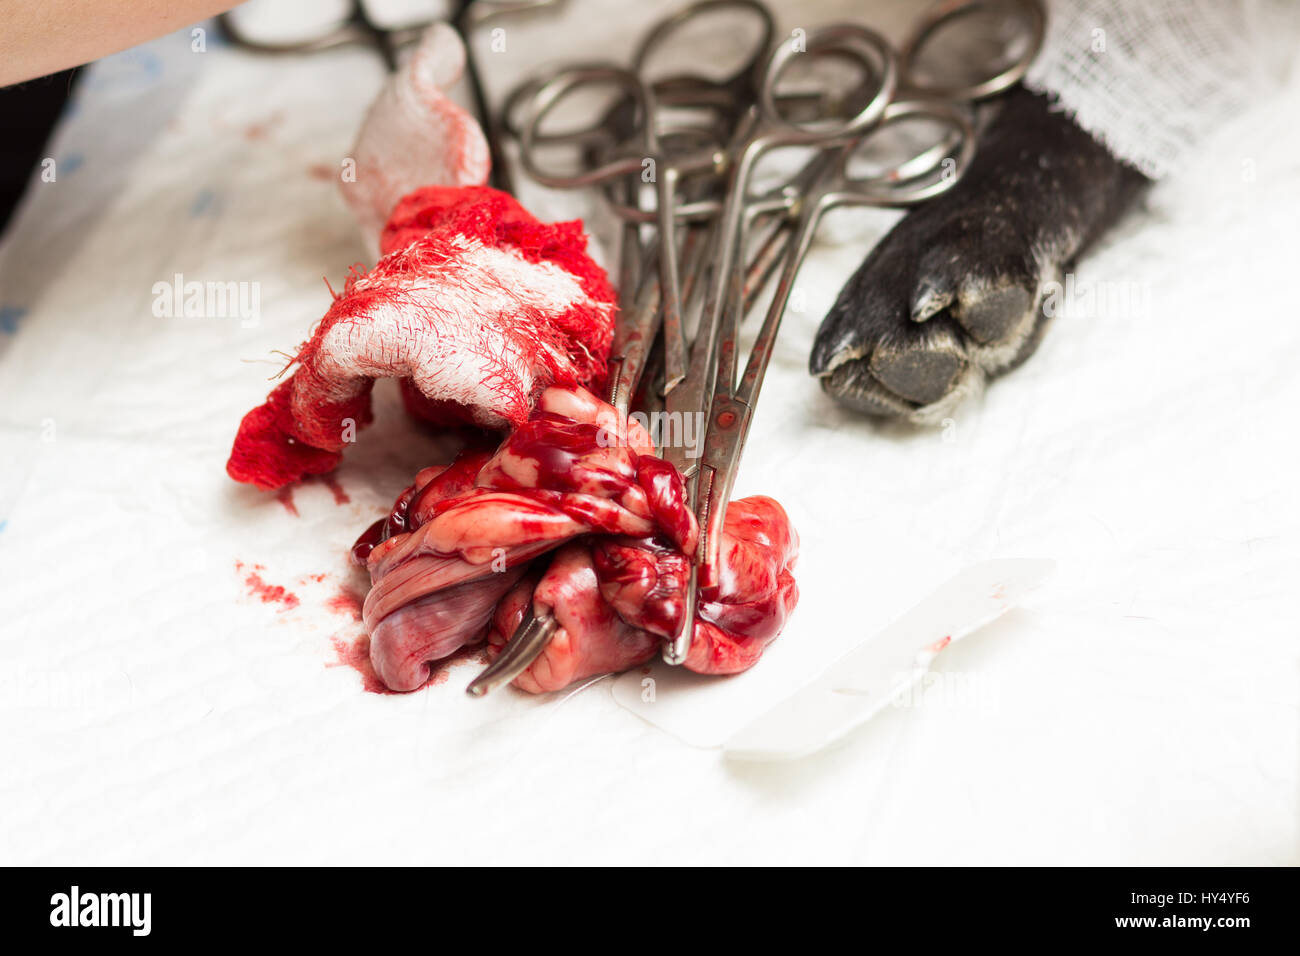 Veterinary, sterilization of a dog of the breed French bulldog, uterus and seminal canals removed during surgery - Stock Image